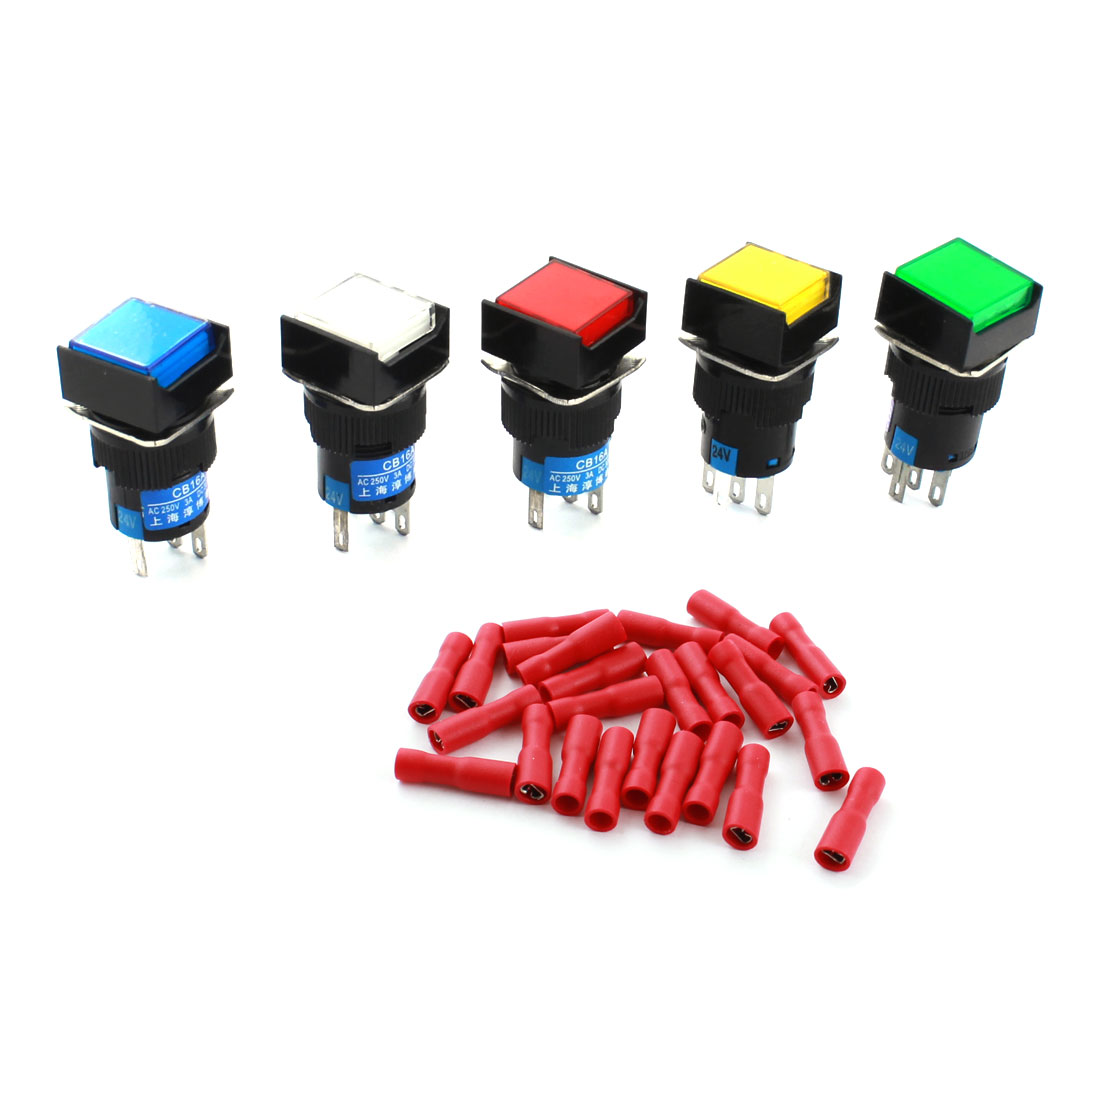 5pcs DC 24V Lamp Momentary Square Push Button Switch + Insulated Crimp Terminal